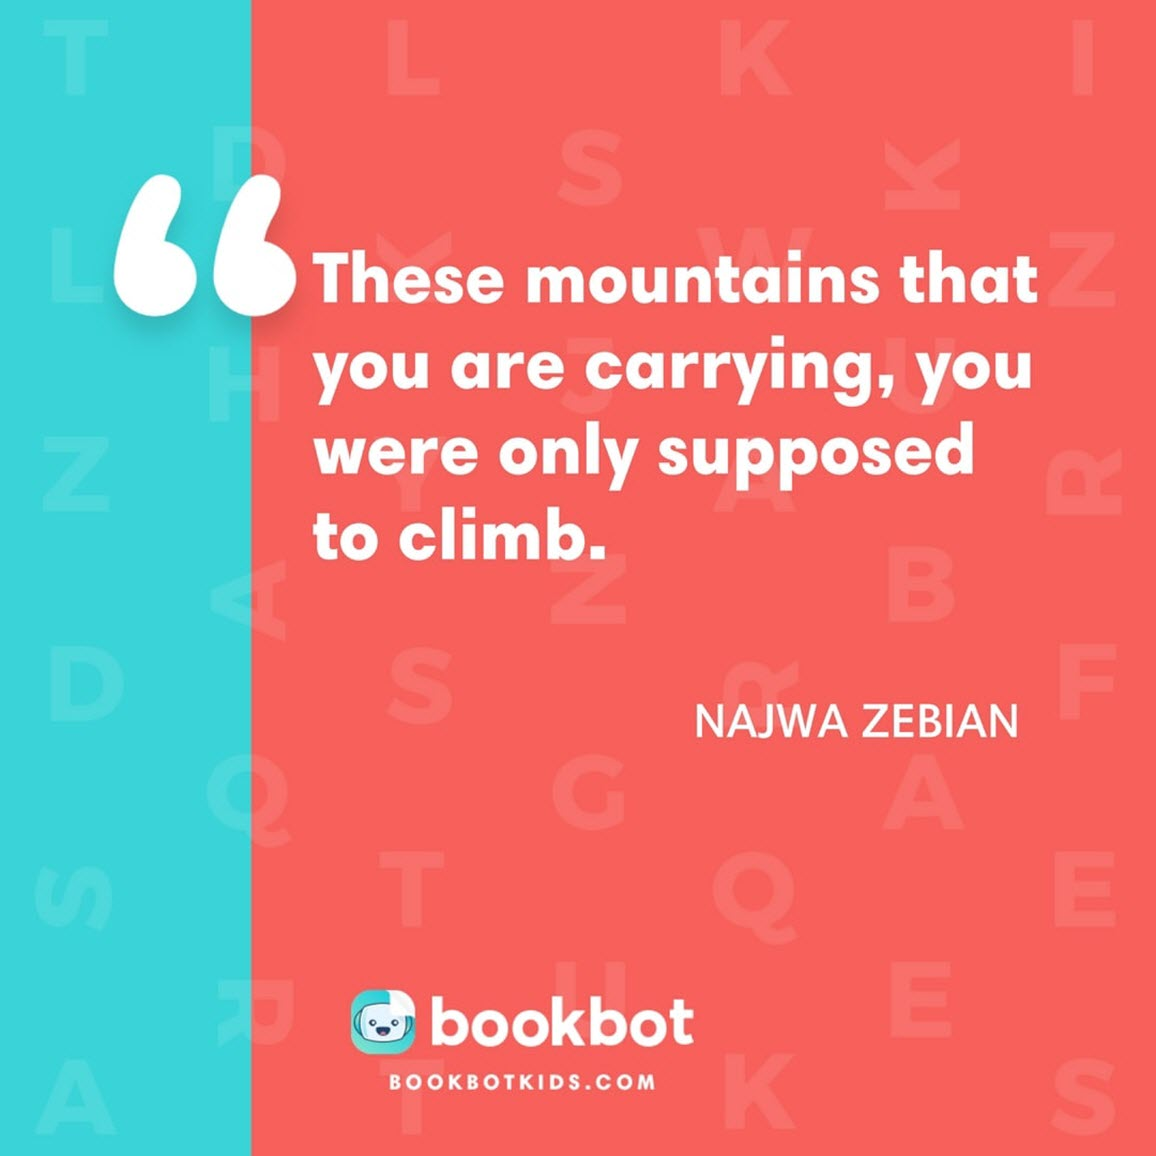 These mountains that you are carrying, you were only supposed to climb. – Najwa Zebian